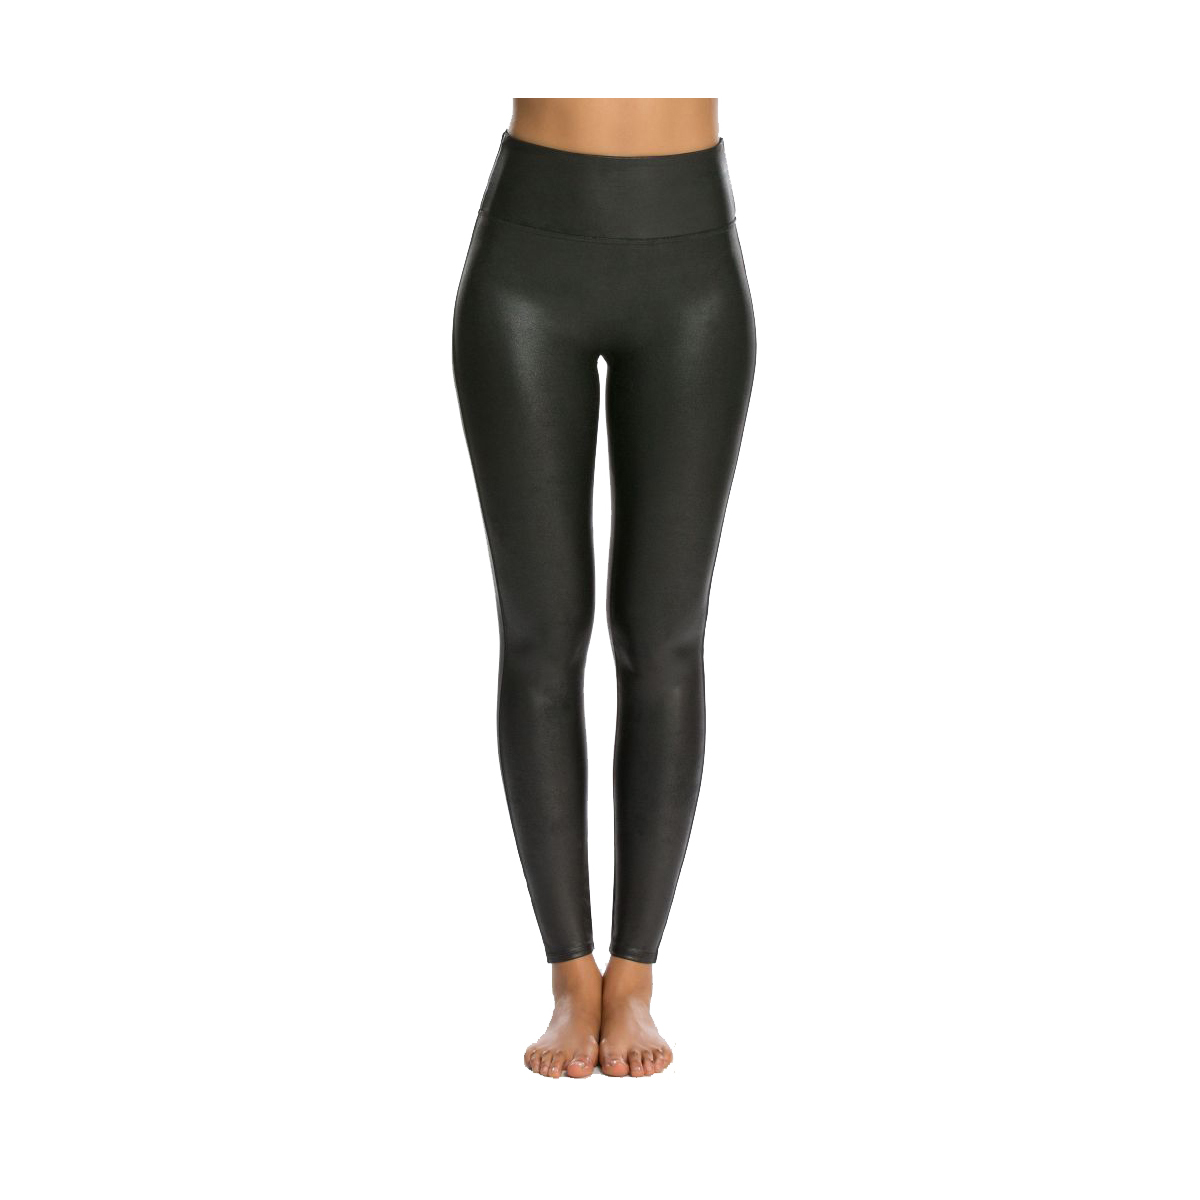 Best Faux Leather Option: Spanx Faux Leather Leggings